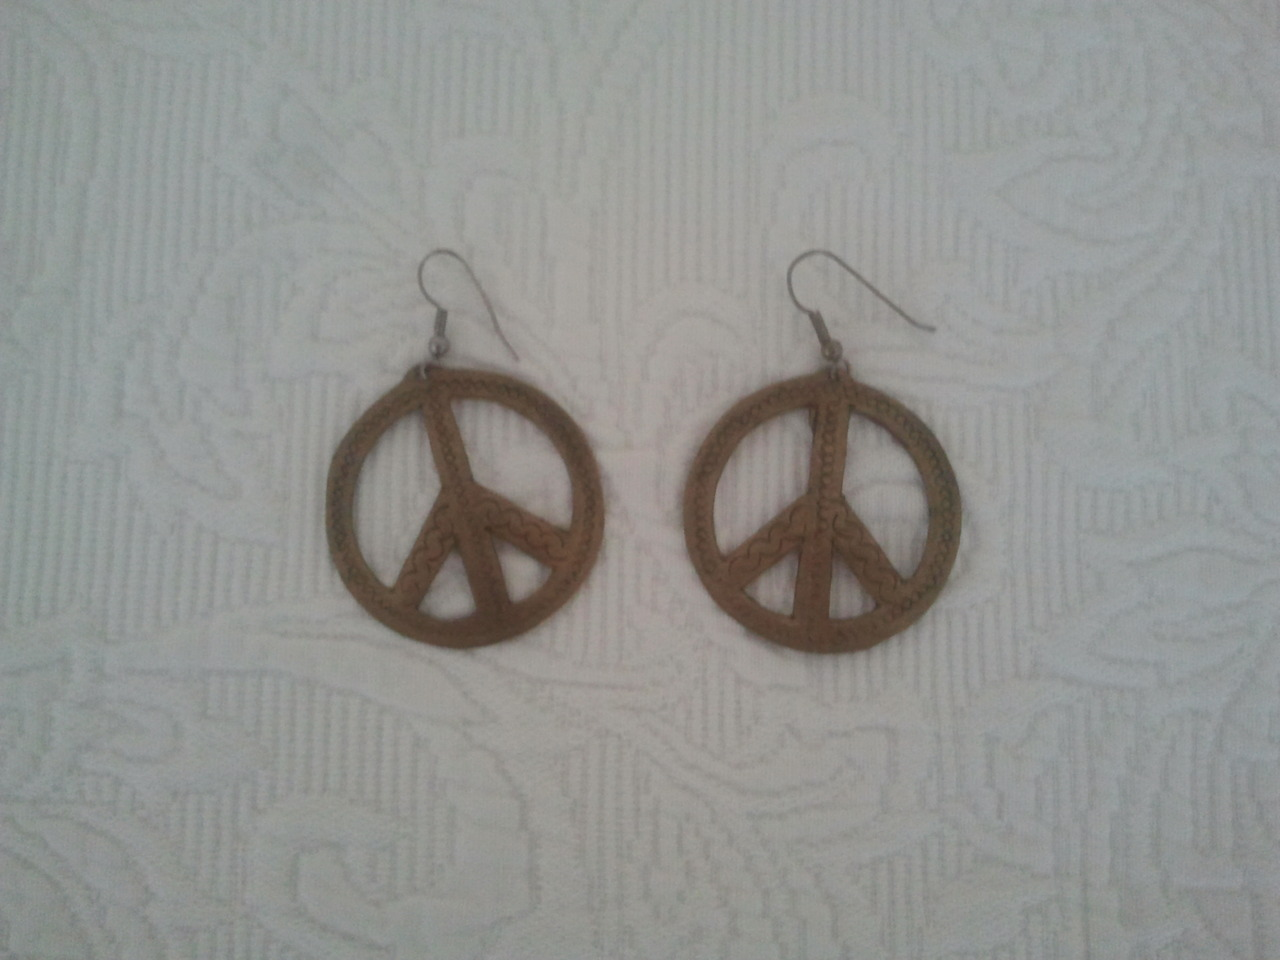 my great aunt showed me her peace earrings from WWII today. so cool!